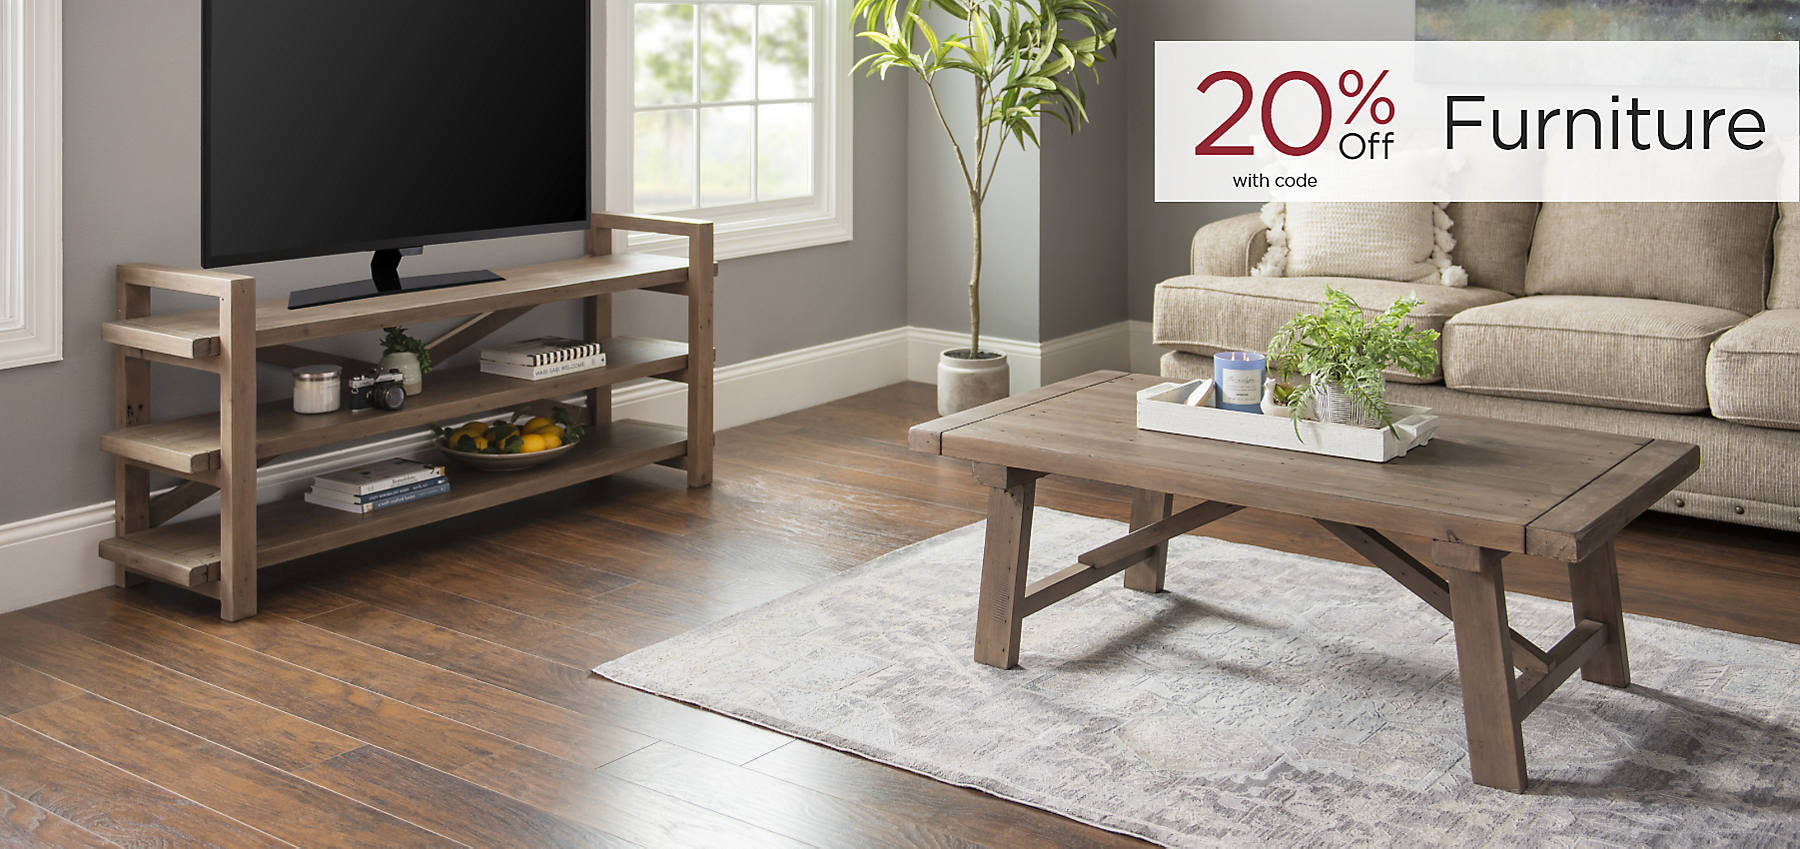 Furniture 20% Off with code